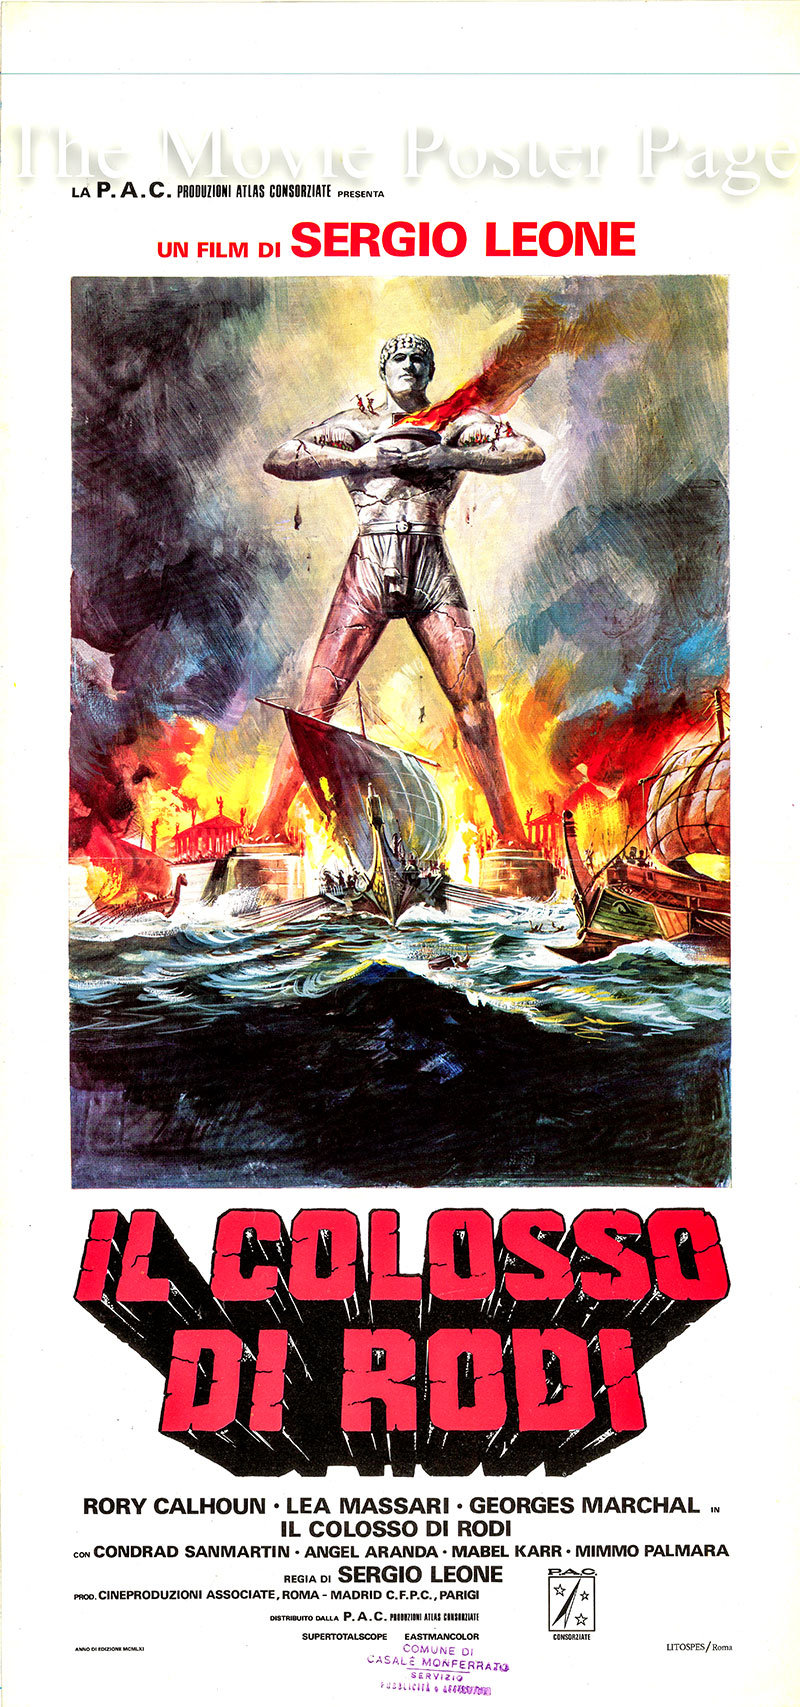 Pictured is an Italian locandina poster for the 1961 Sergio Leone film The Colossus of Rhodes starring Rory Calhoun as Dario.